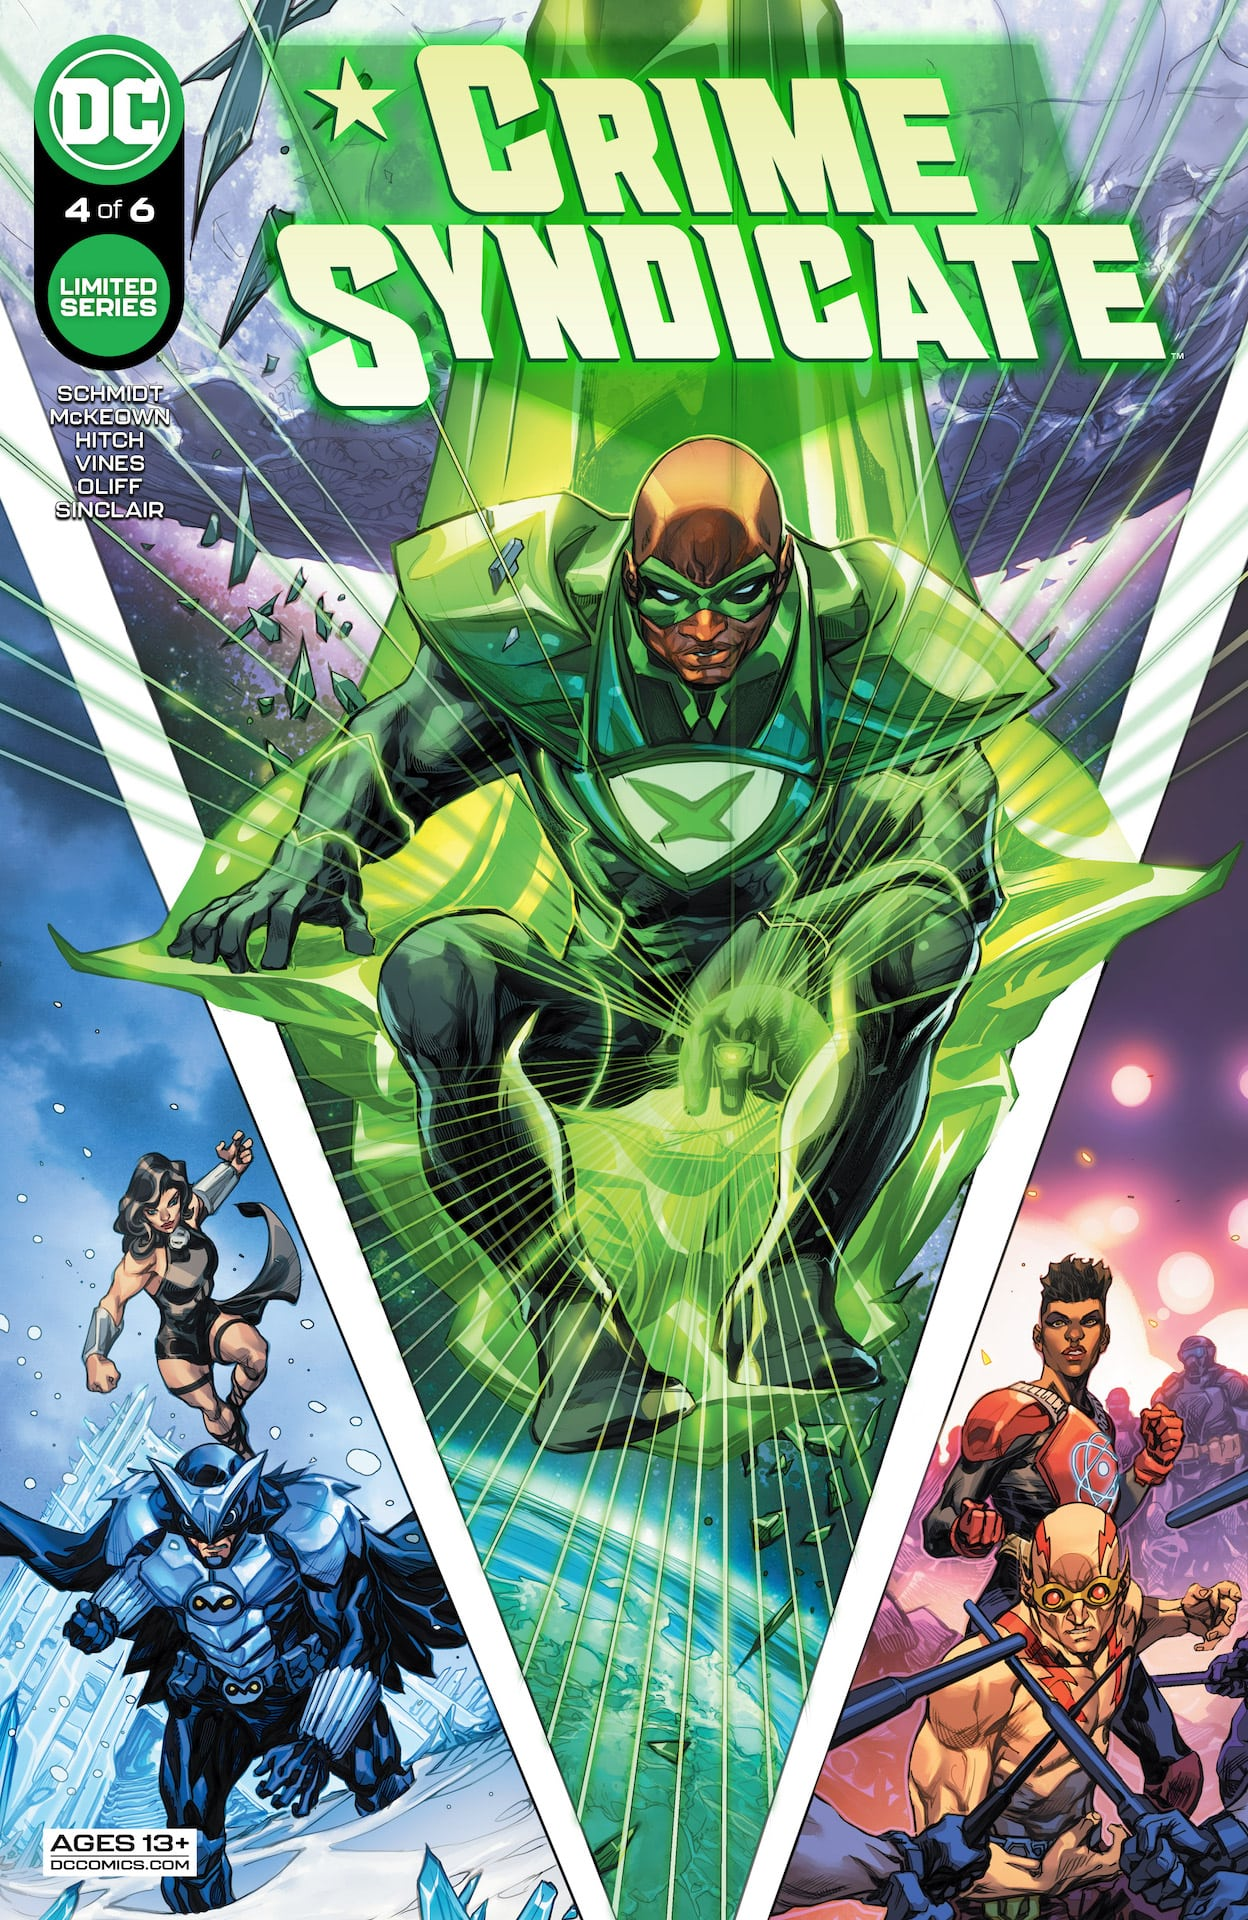 DC Preview: Crime Syndicate #4